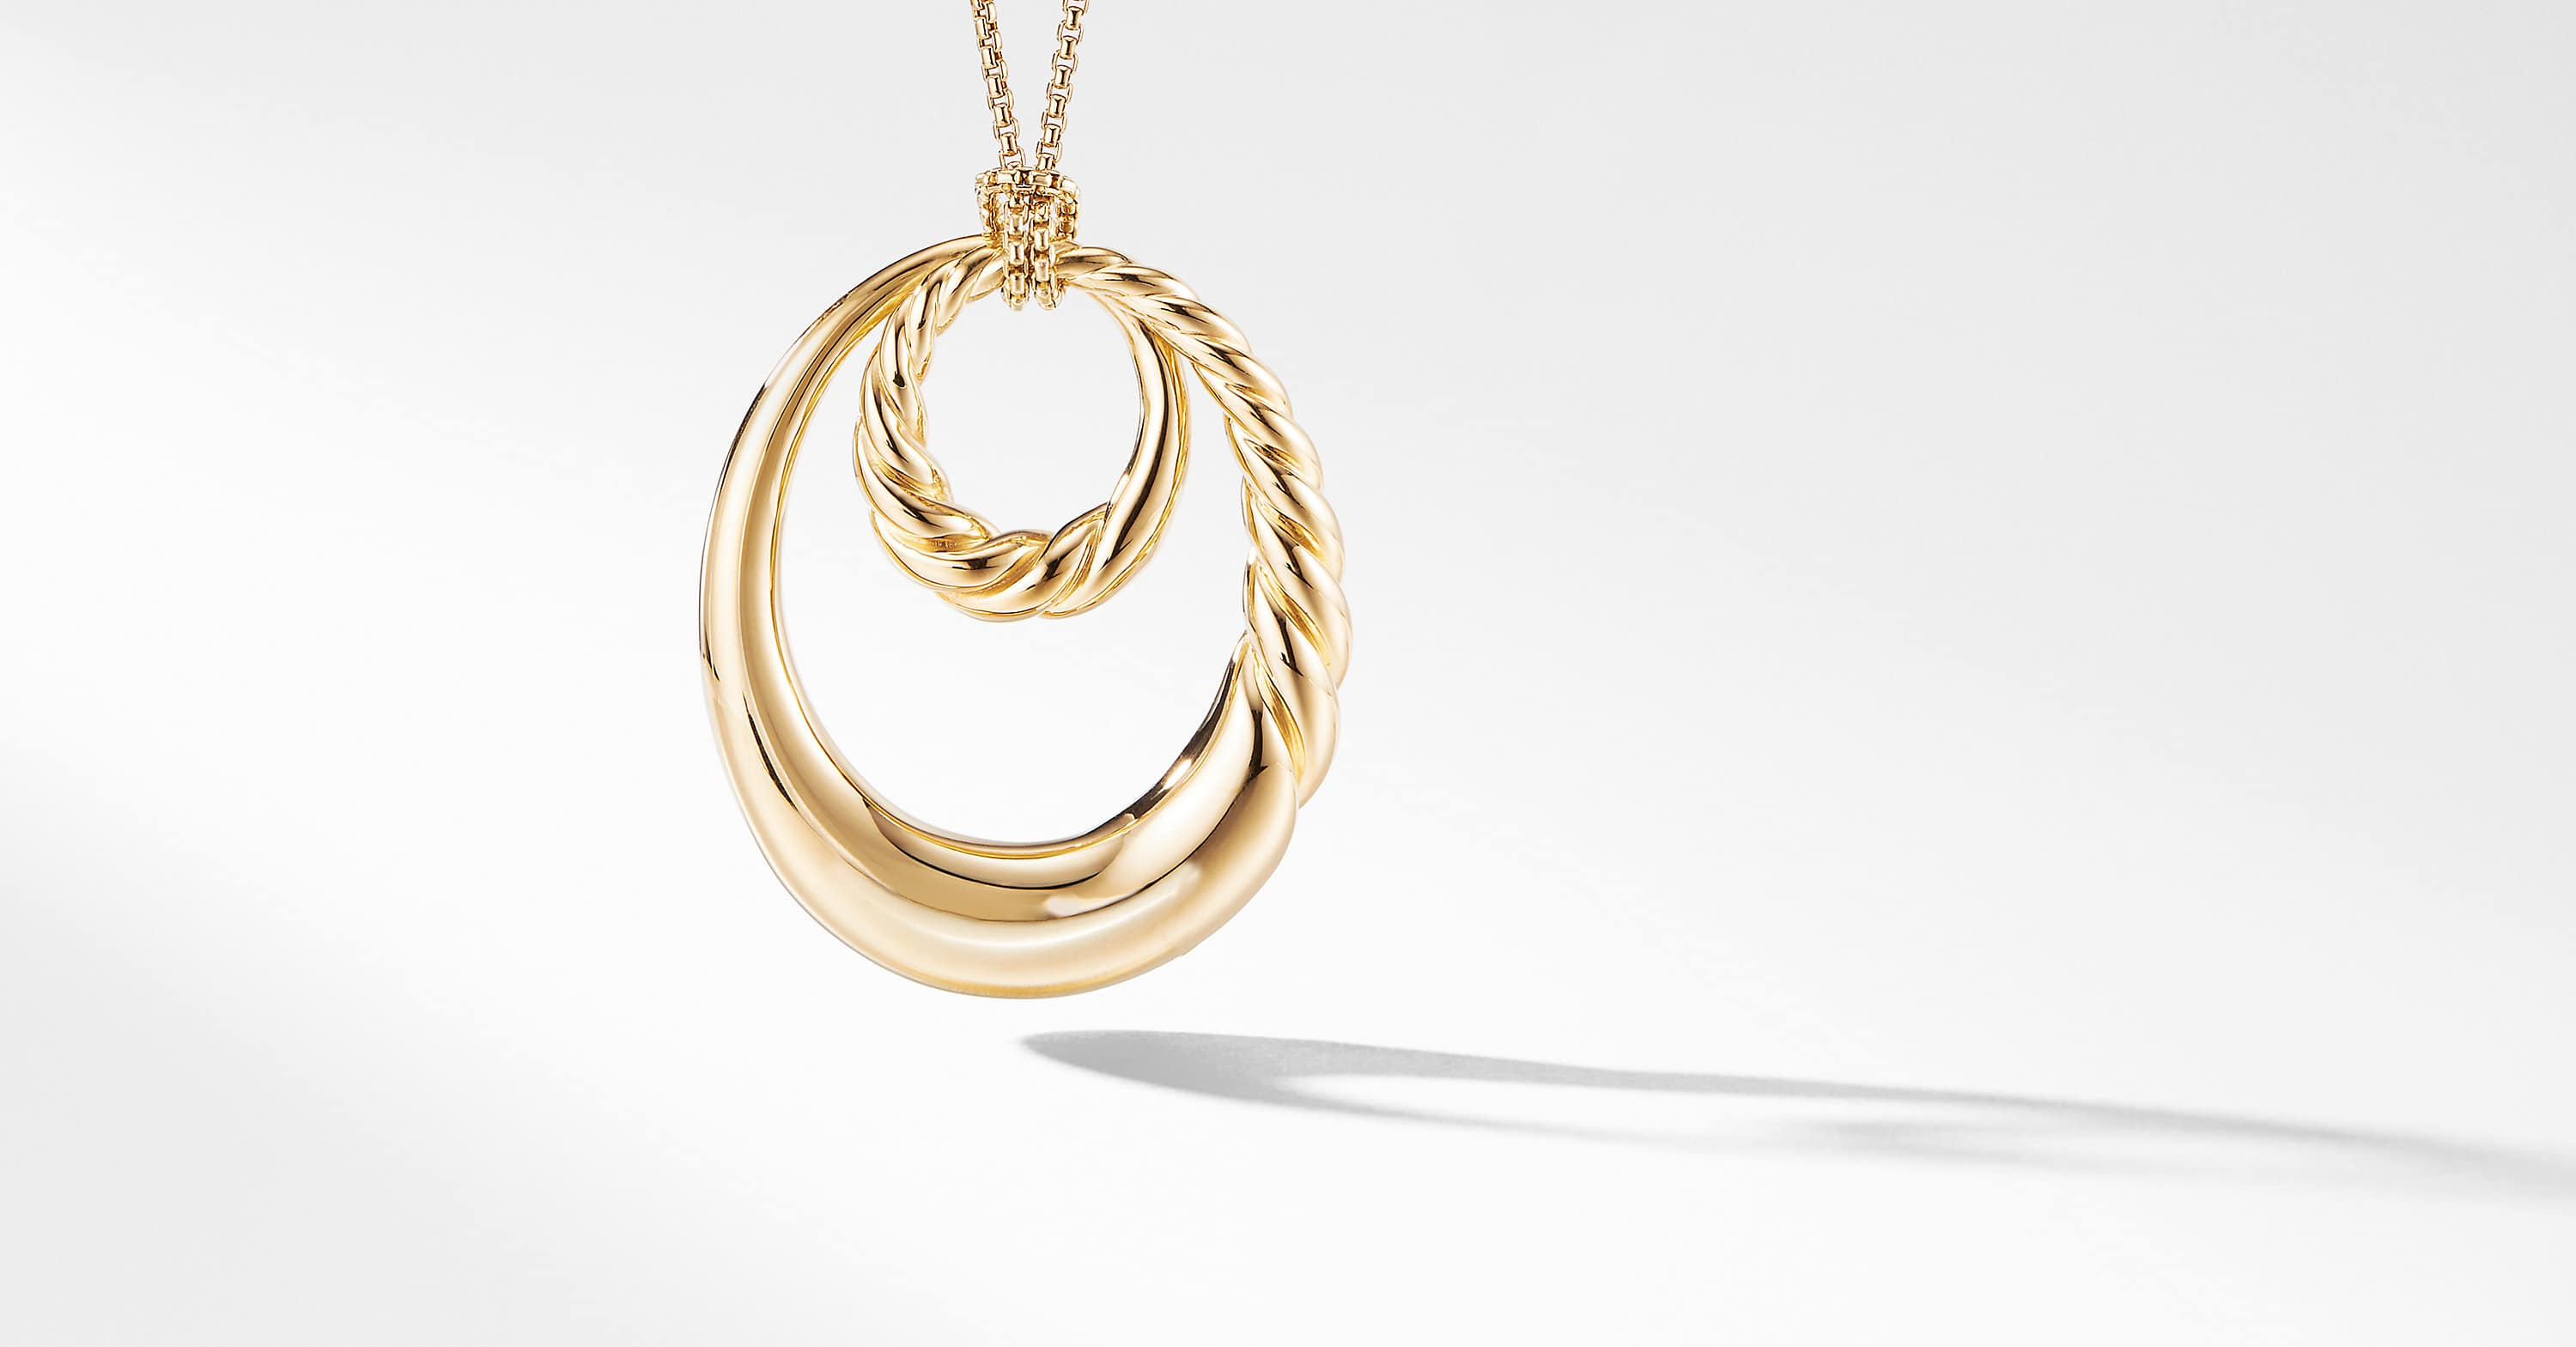 Pure Form Pendant Necklace in 18K Yellow Gold, 52mm